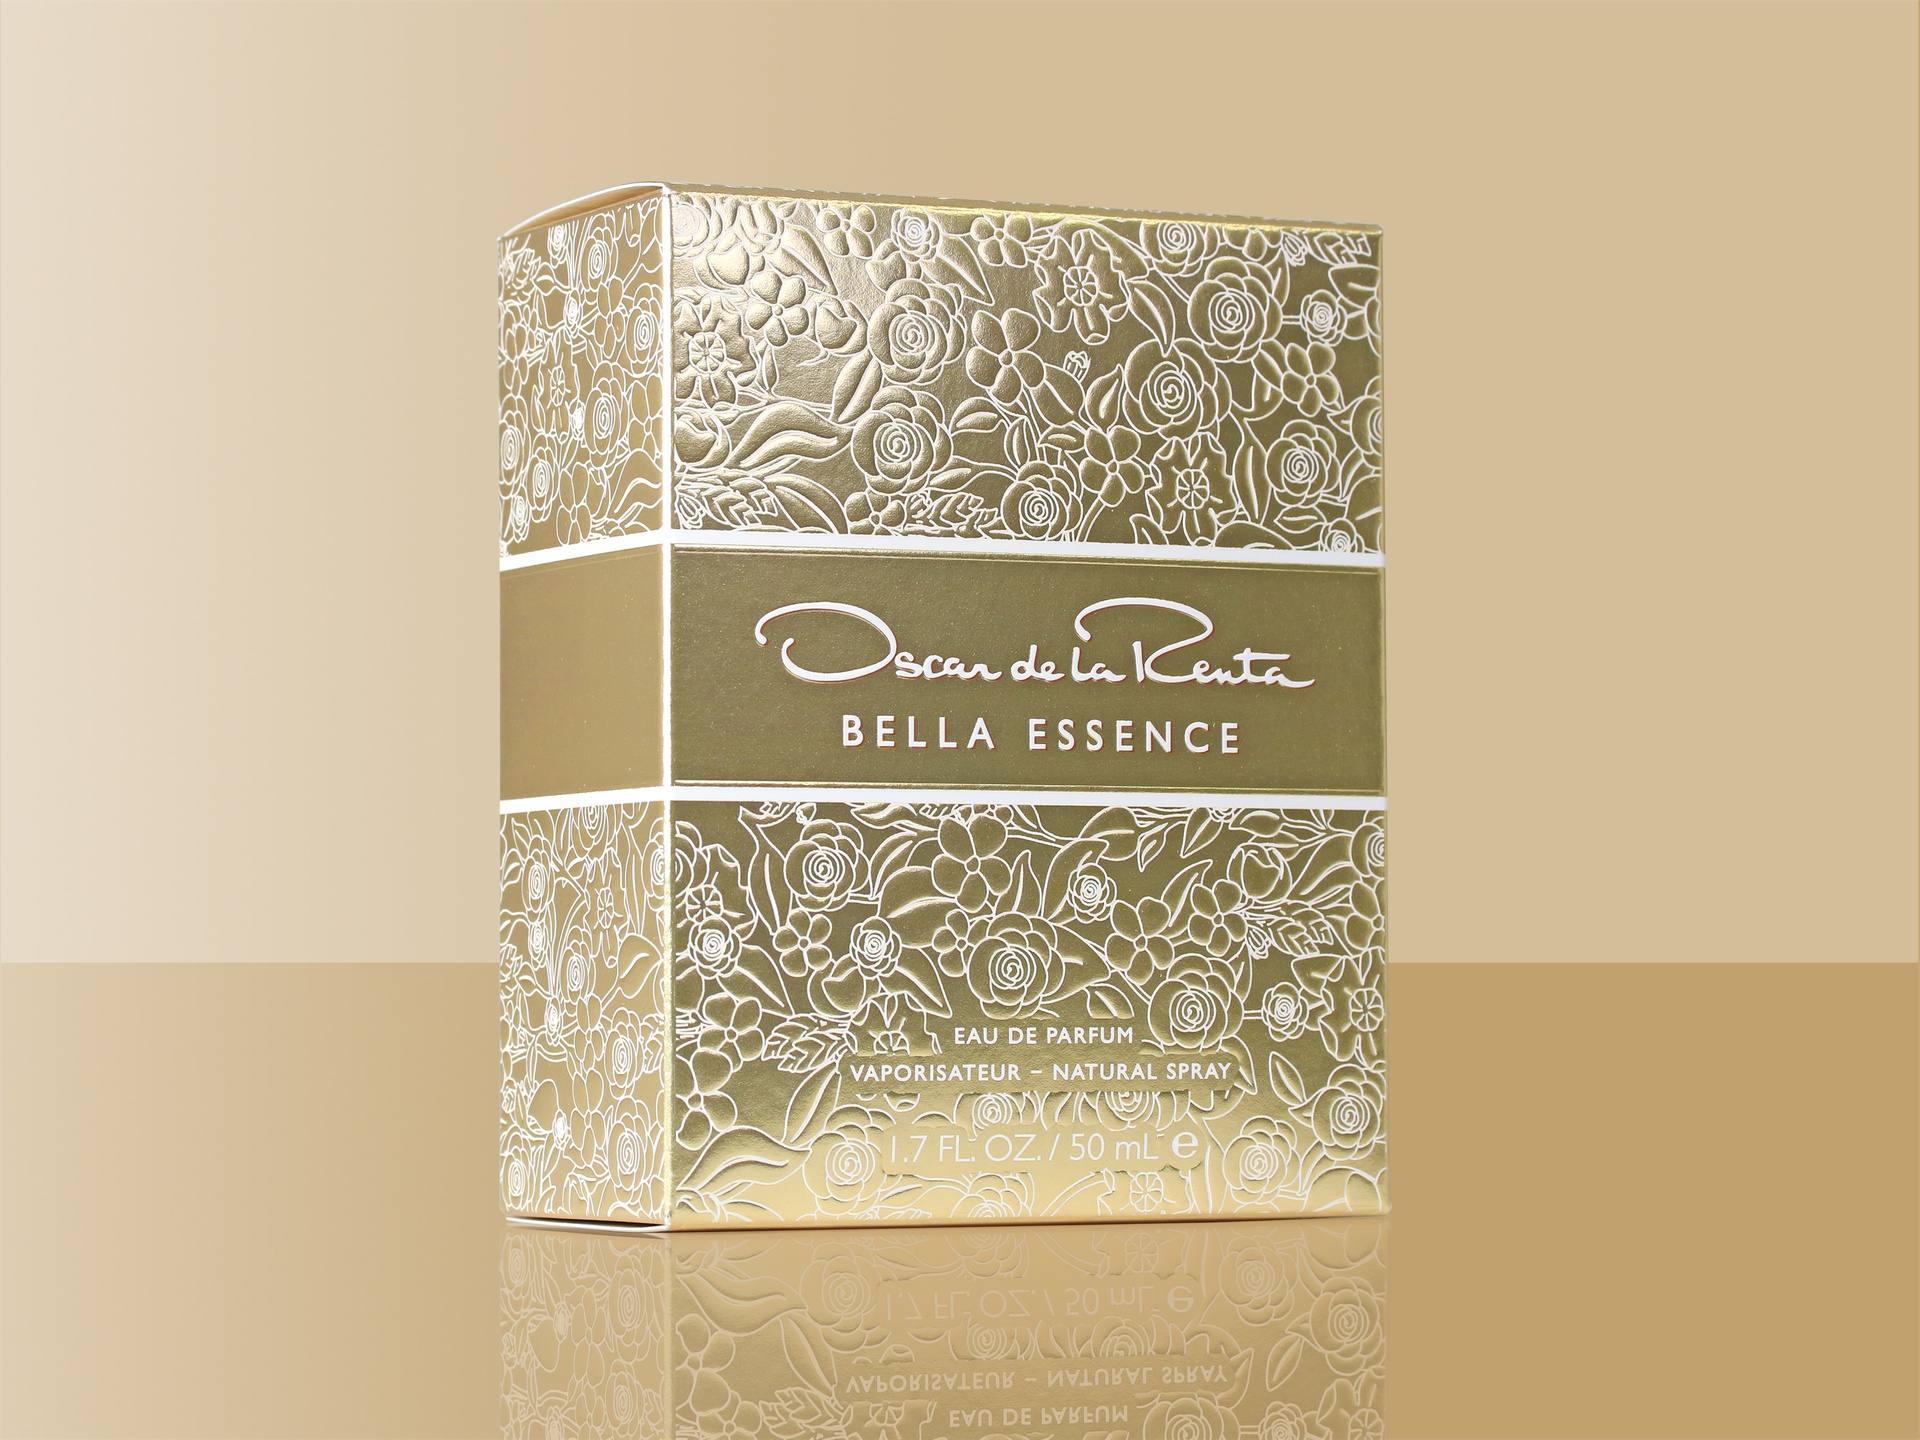 Oscar de la Renta Bella Essence packaging